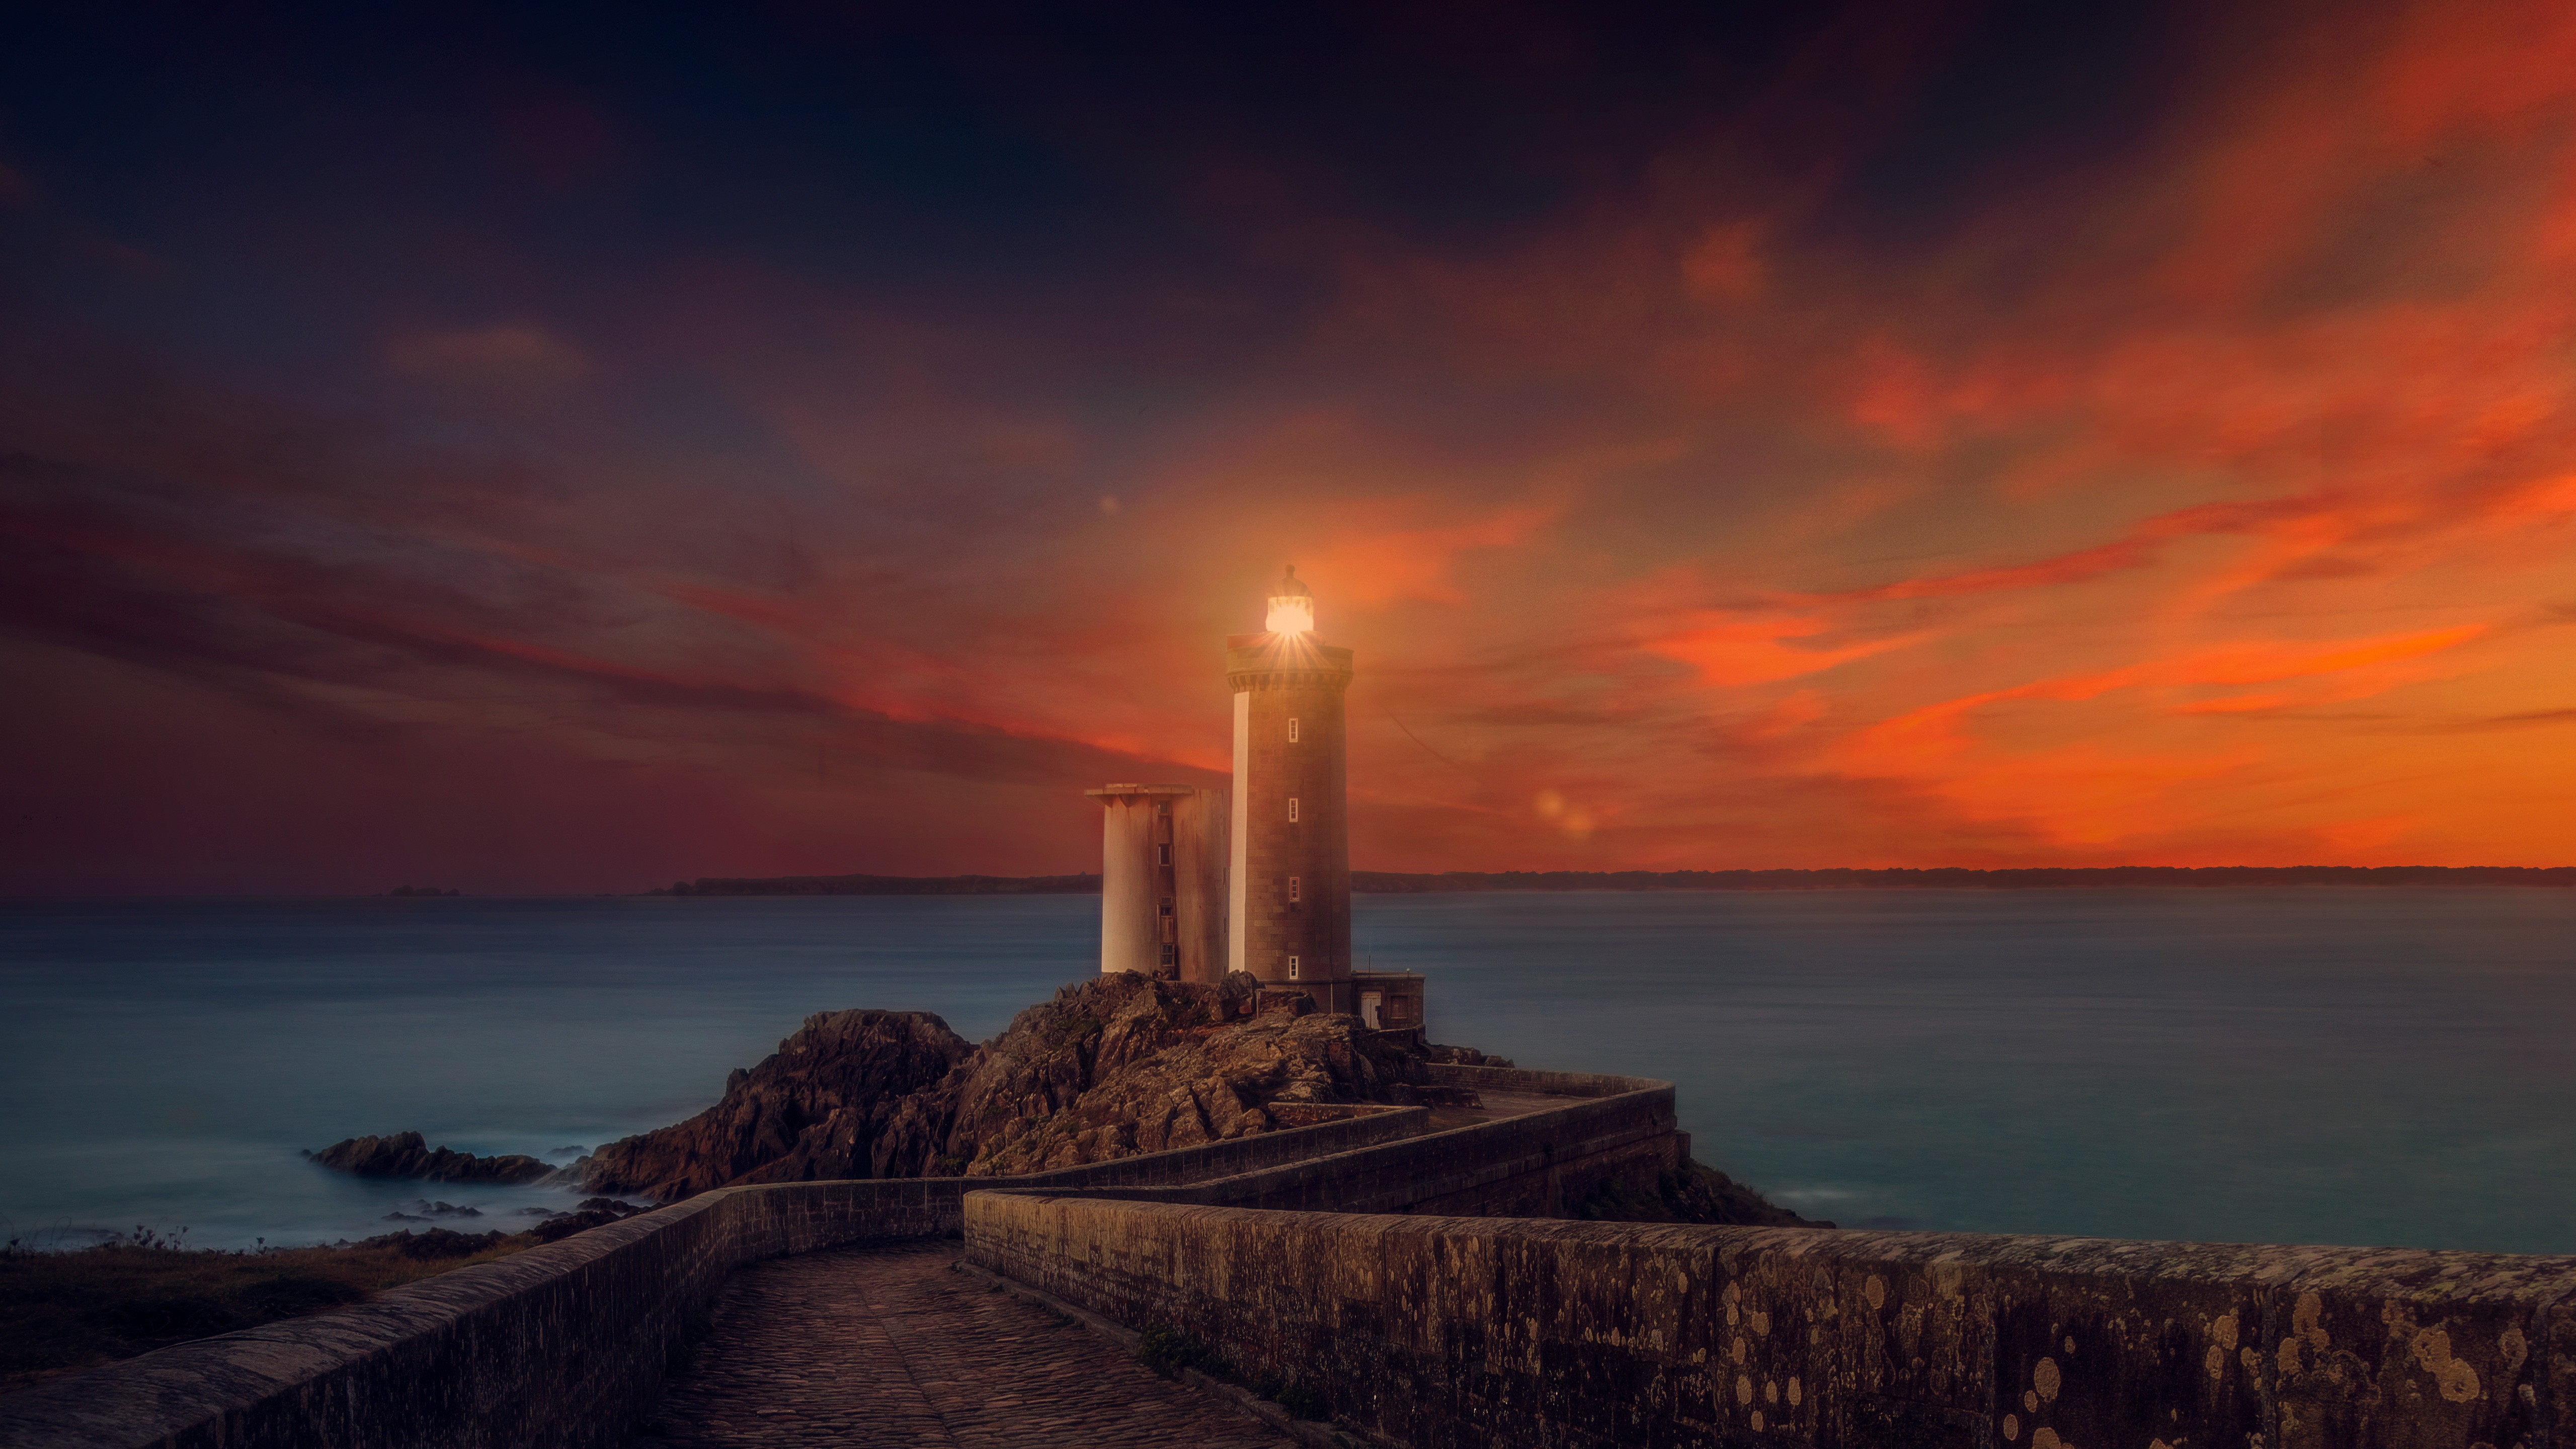 Cute Scenery Gif Wallpaper Sunset Lighthouse 4k Wallpapers Hd Wallpapers Id 18836